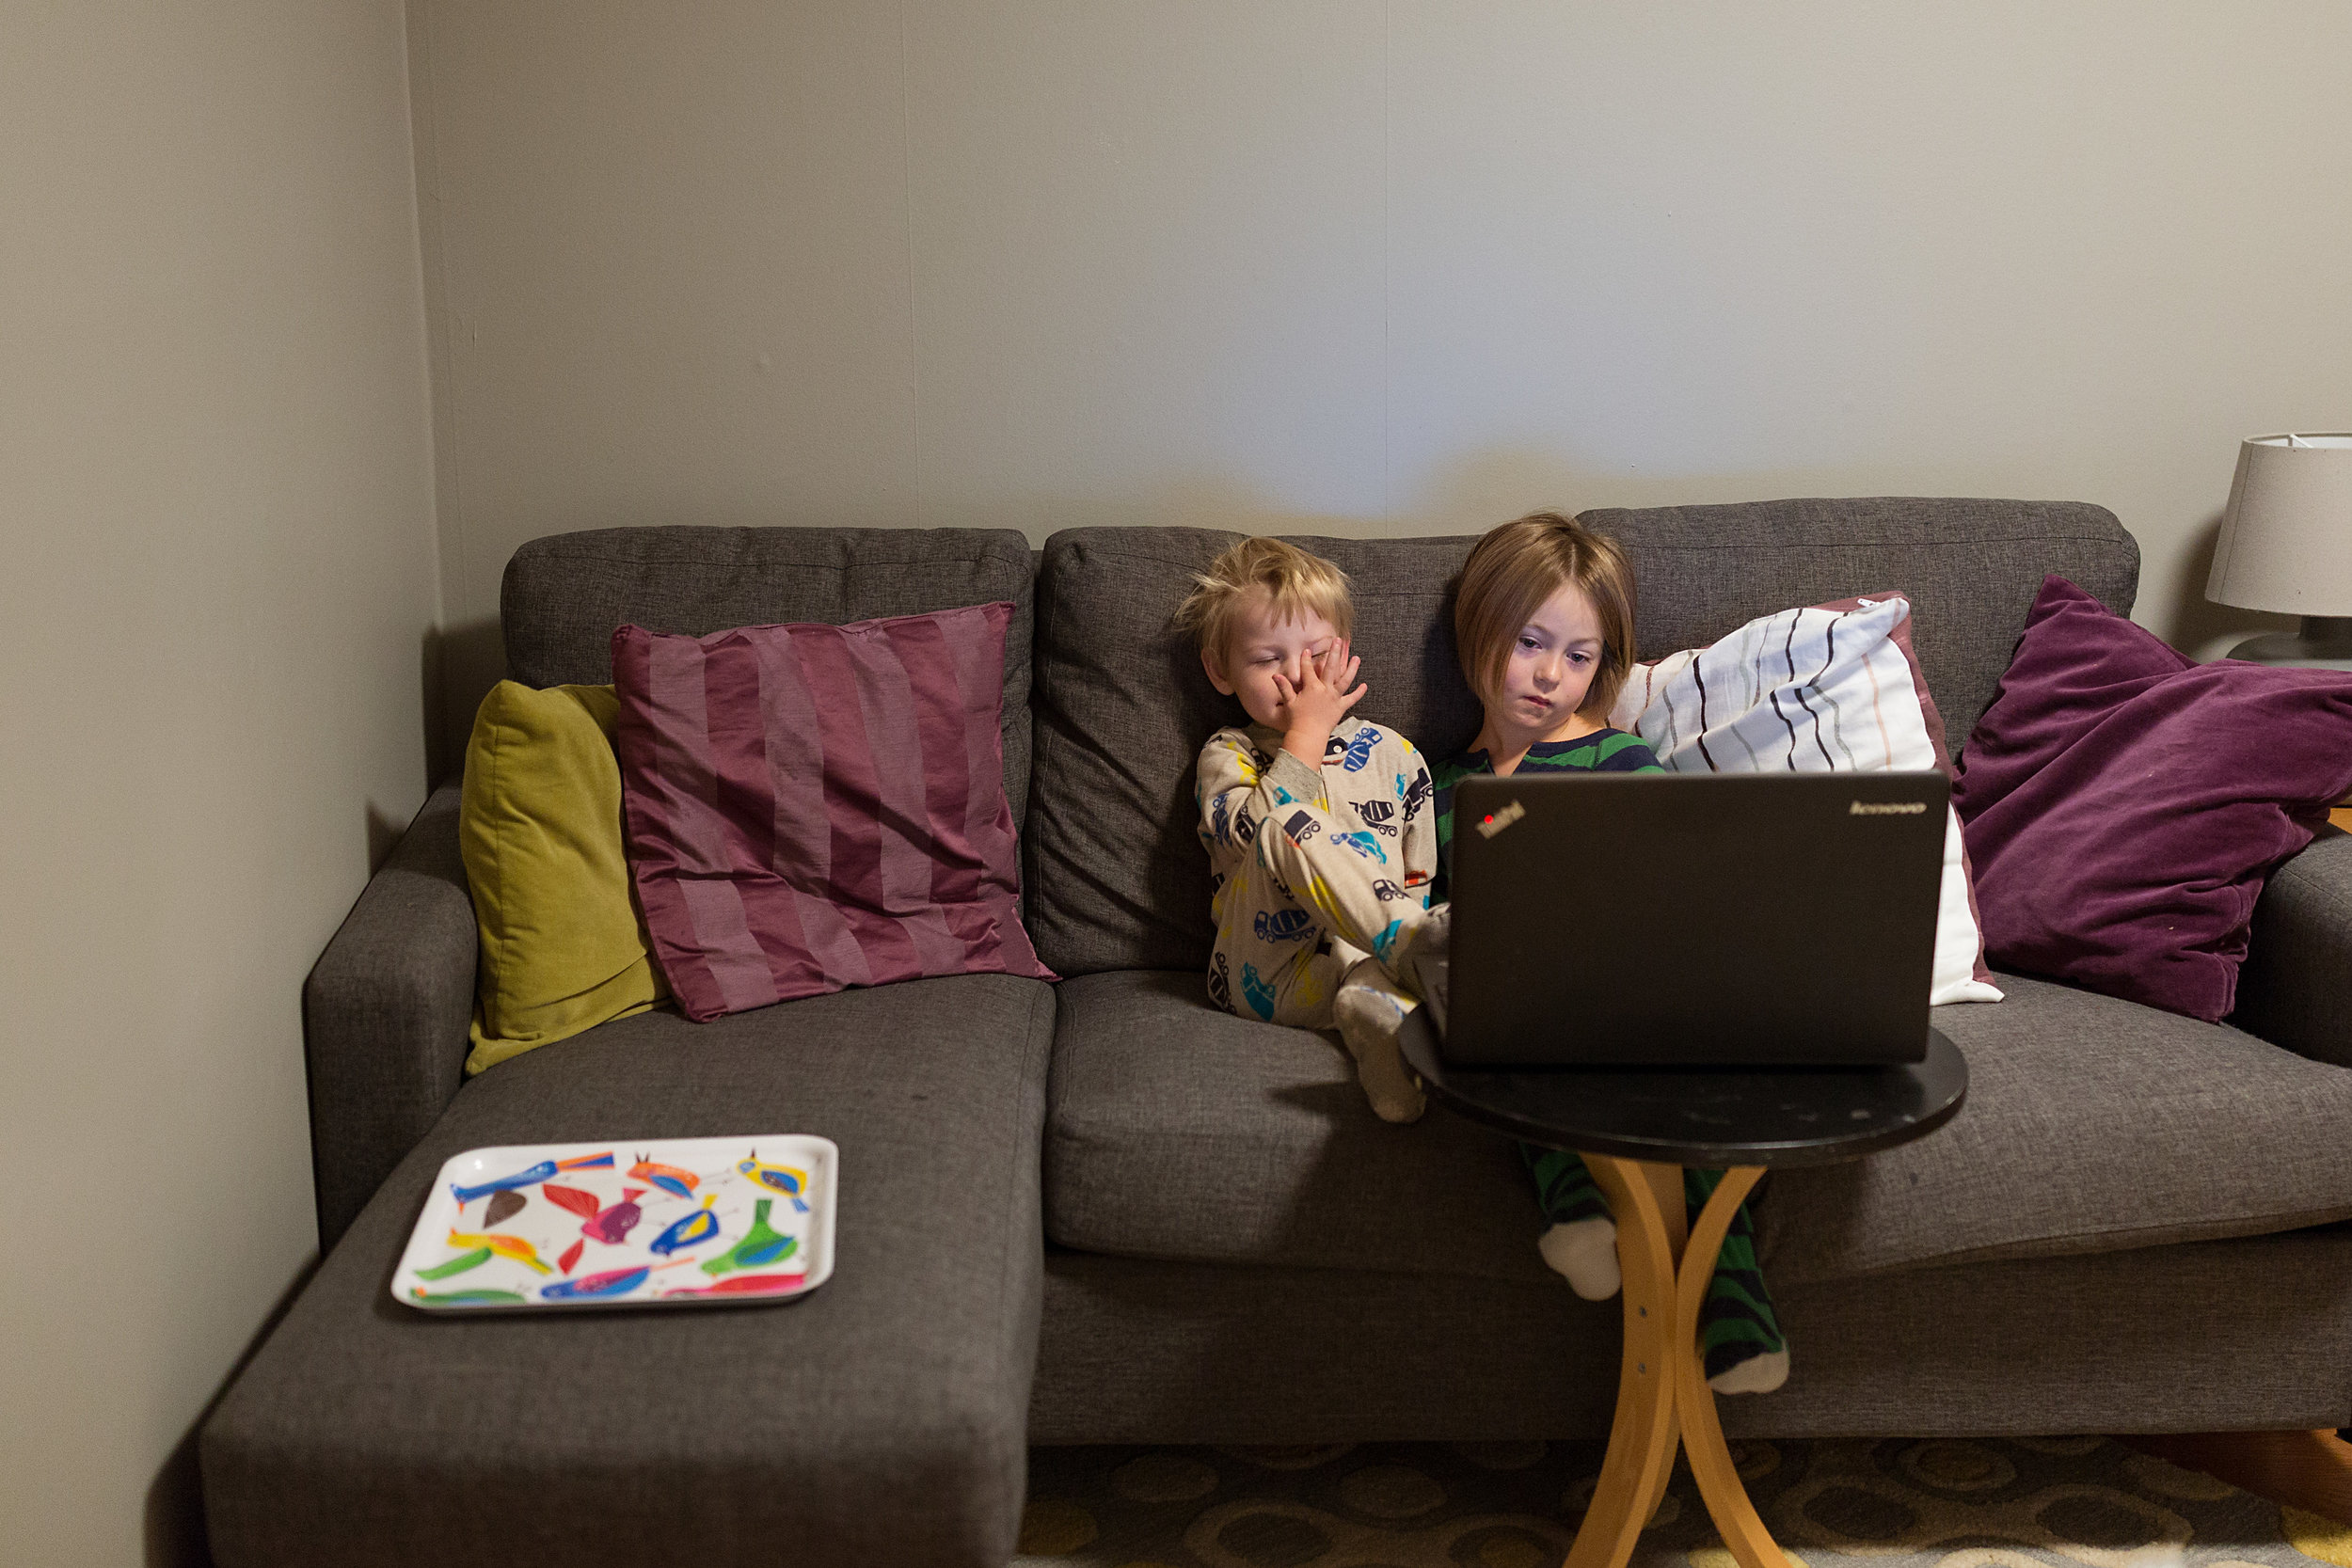 boy and girl sitting on couch watching laptop